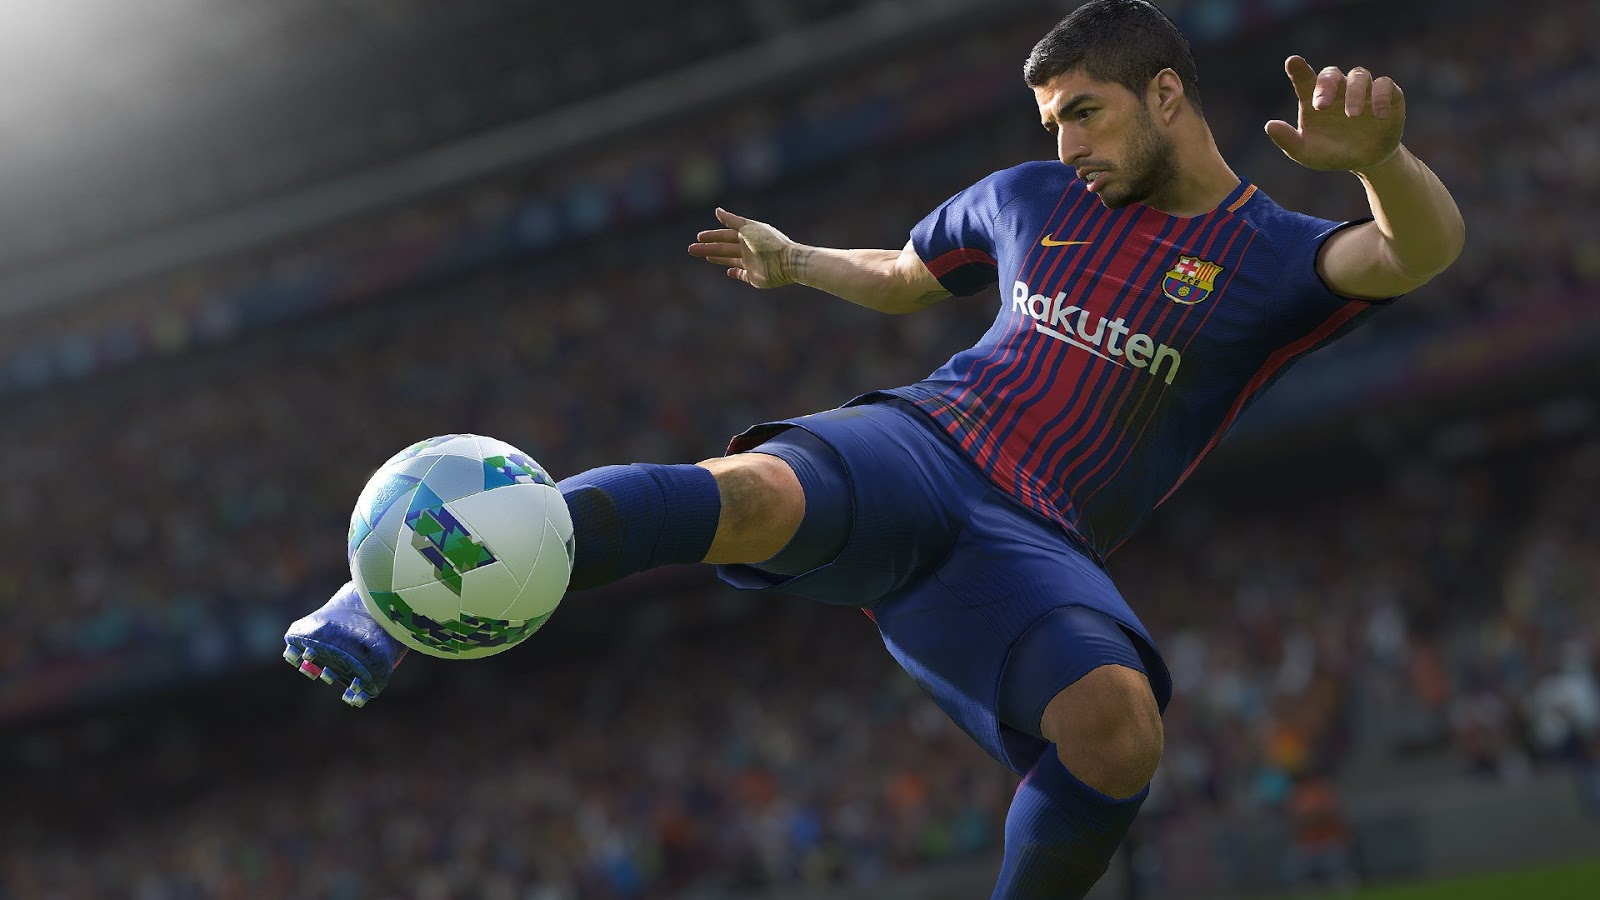 Review Suarez NHD FO4